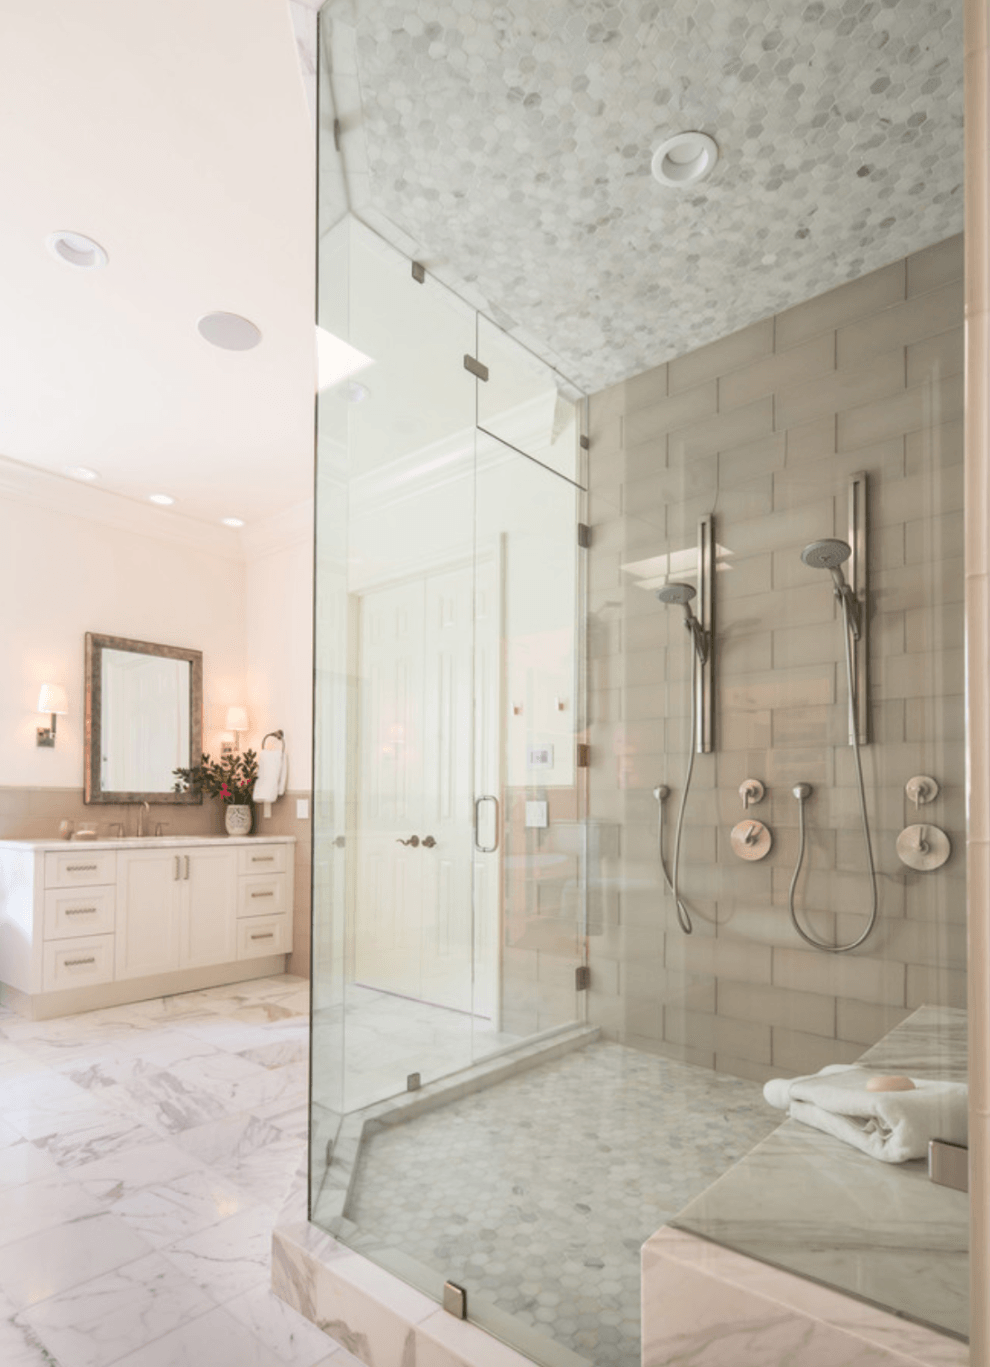 Kitchen and Bath Trends 2018: Tile, Countertops, Backsplashes ...